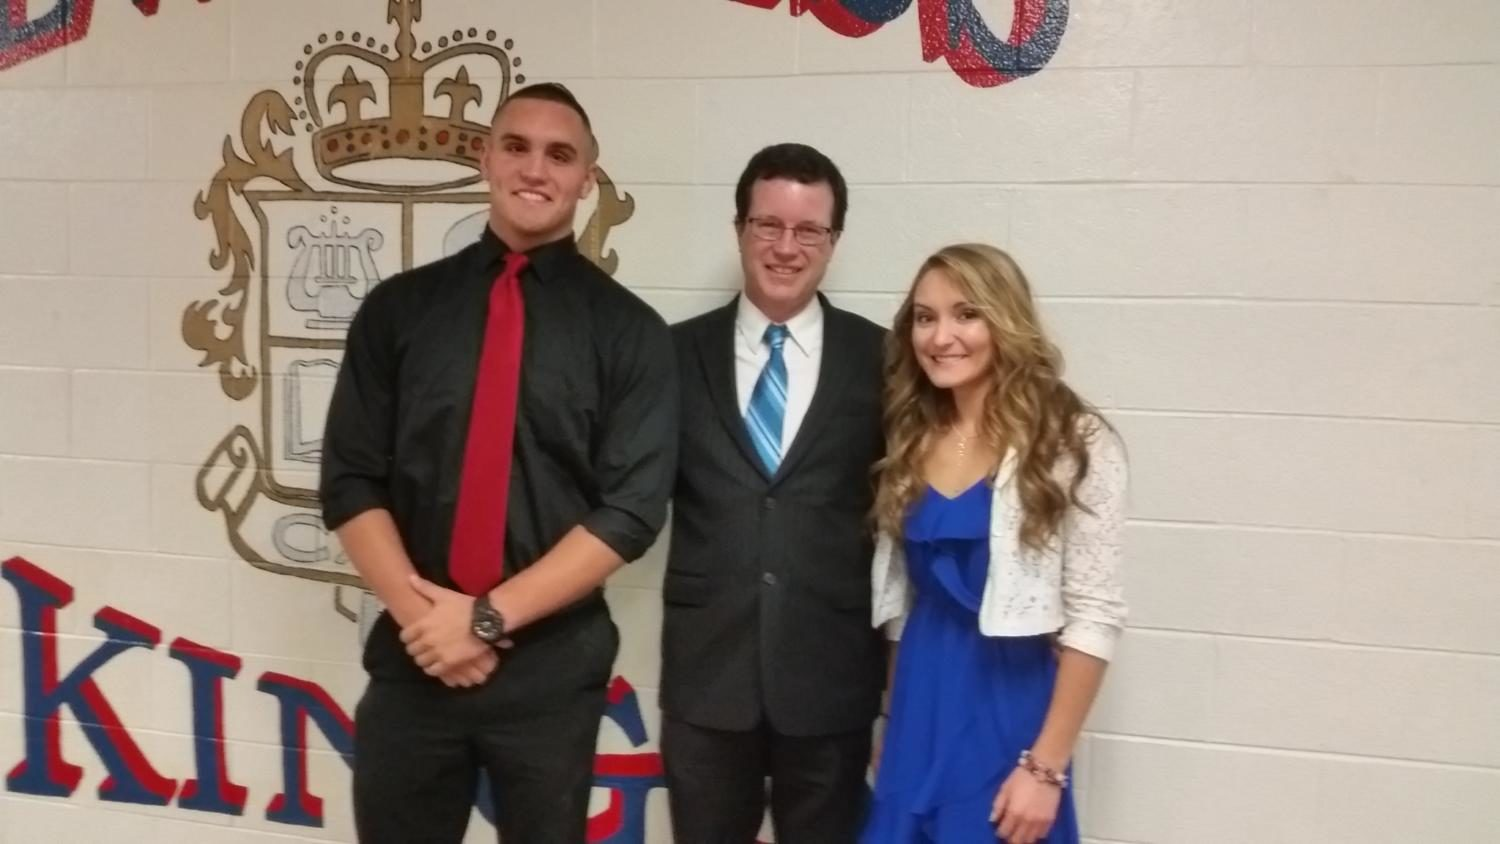 In+the+photo+are+two+of+Mr.+Engle%27s+AP+English+students+who+selected+him+this+year%3A+Shadd+McLochlin++and+Savanna+Thompson.+Both+were+honored+at+the+Latin+Honors+Banquet+on+Sunday.%2C+May+21.++Not+in+the+photo-+Olivia+Johnson